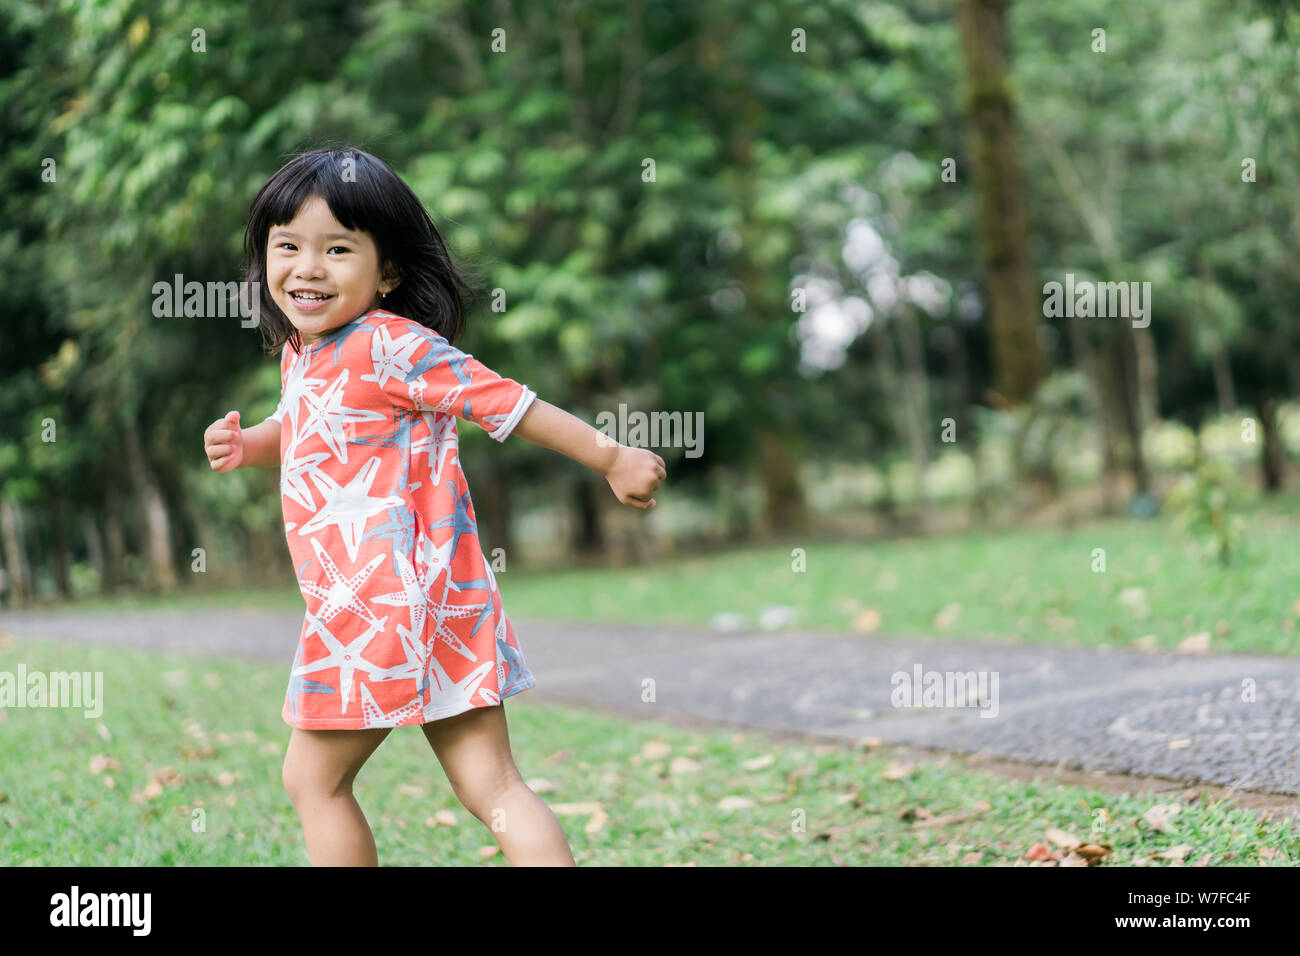 Asian Cute Girl With Smile Enjoy Playing Alone Stock Photo